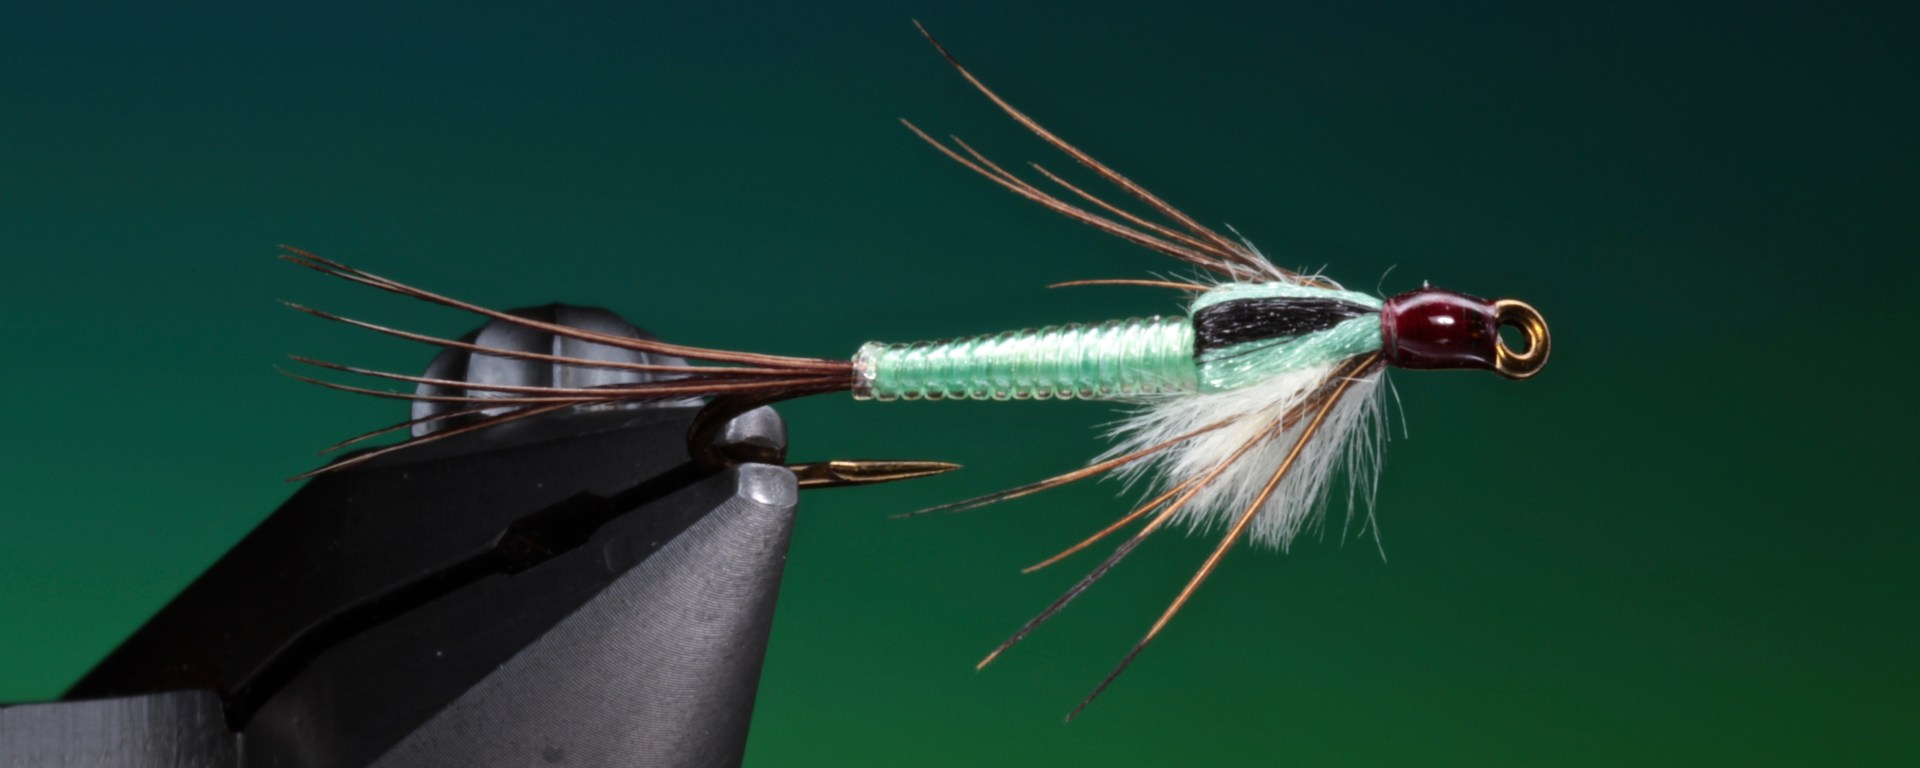 Ultra Lace Mayfly nymph